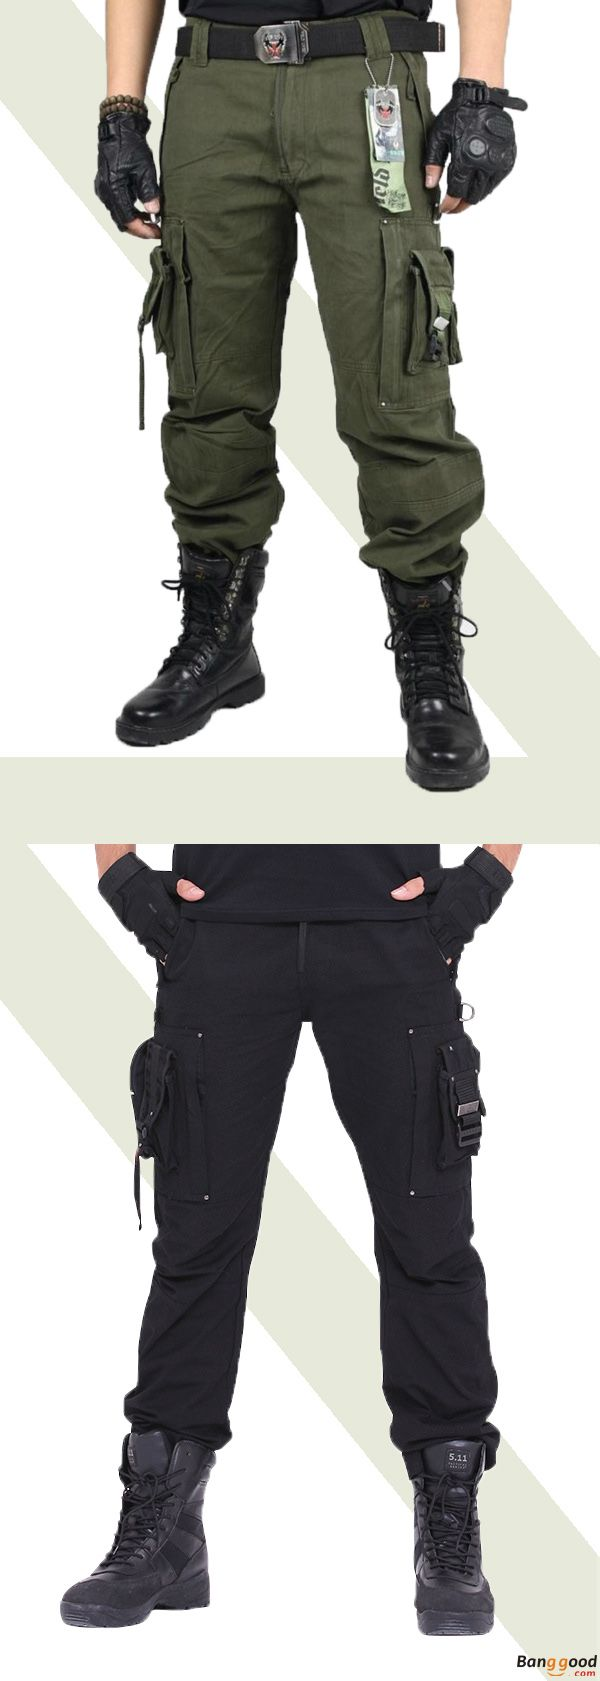 US$53.89 + Free Shipping. Outdoor Pants, Military Pants, Tactical Pants, Cargo Pants, Multi Pockets Pants, Mountaineering Pants, Long Trousers. Color: Green, Black. Time to Suits Up!